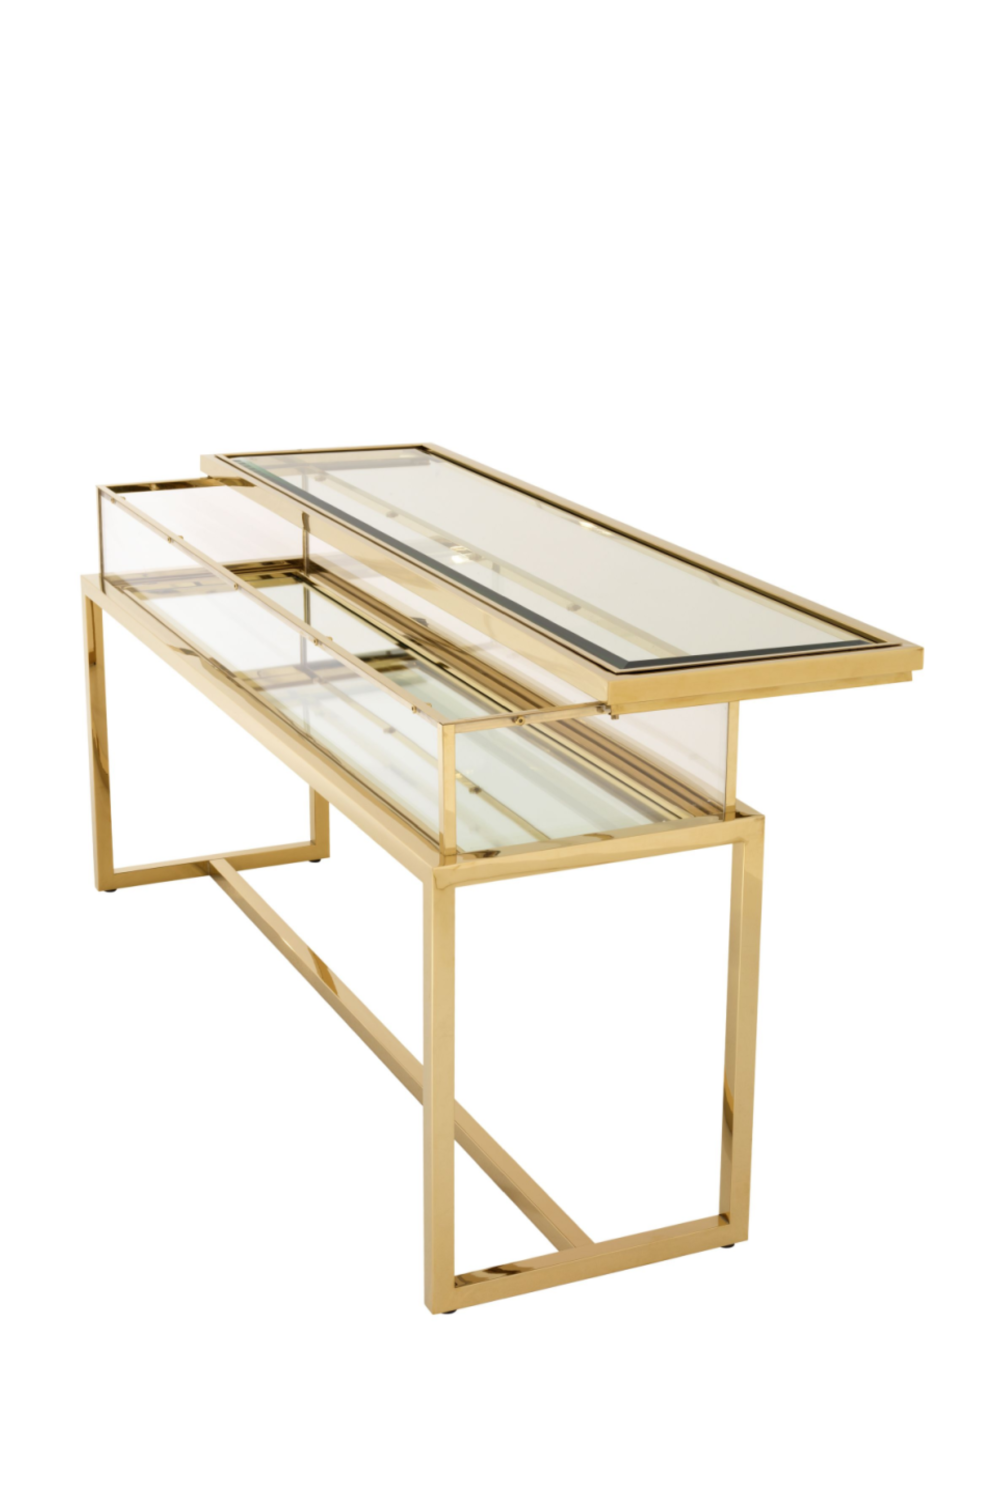 Gold Sliding Top Console Table | Eichholtz | #1 Eichholtz Retailer